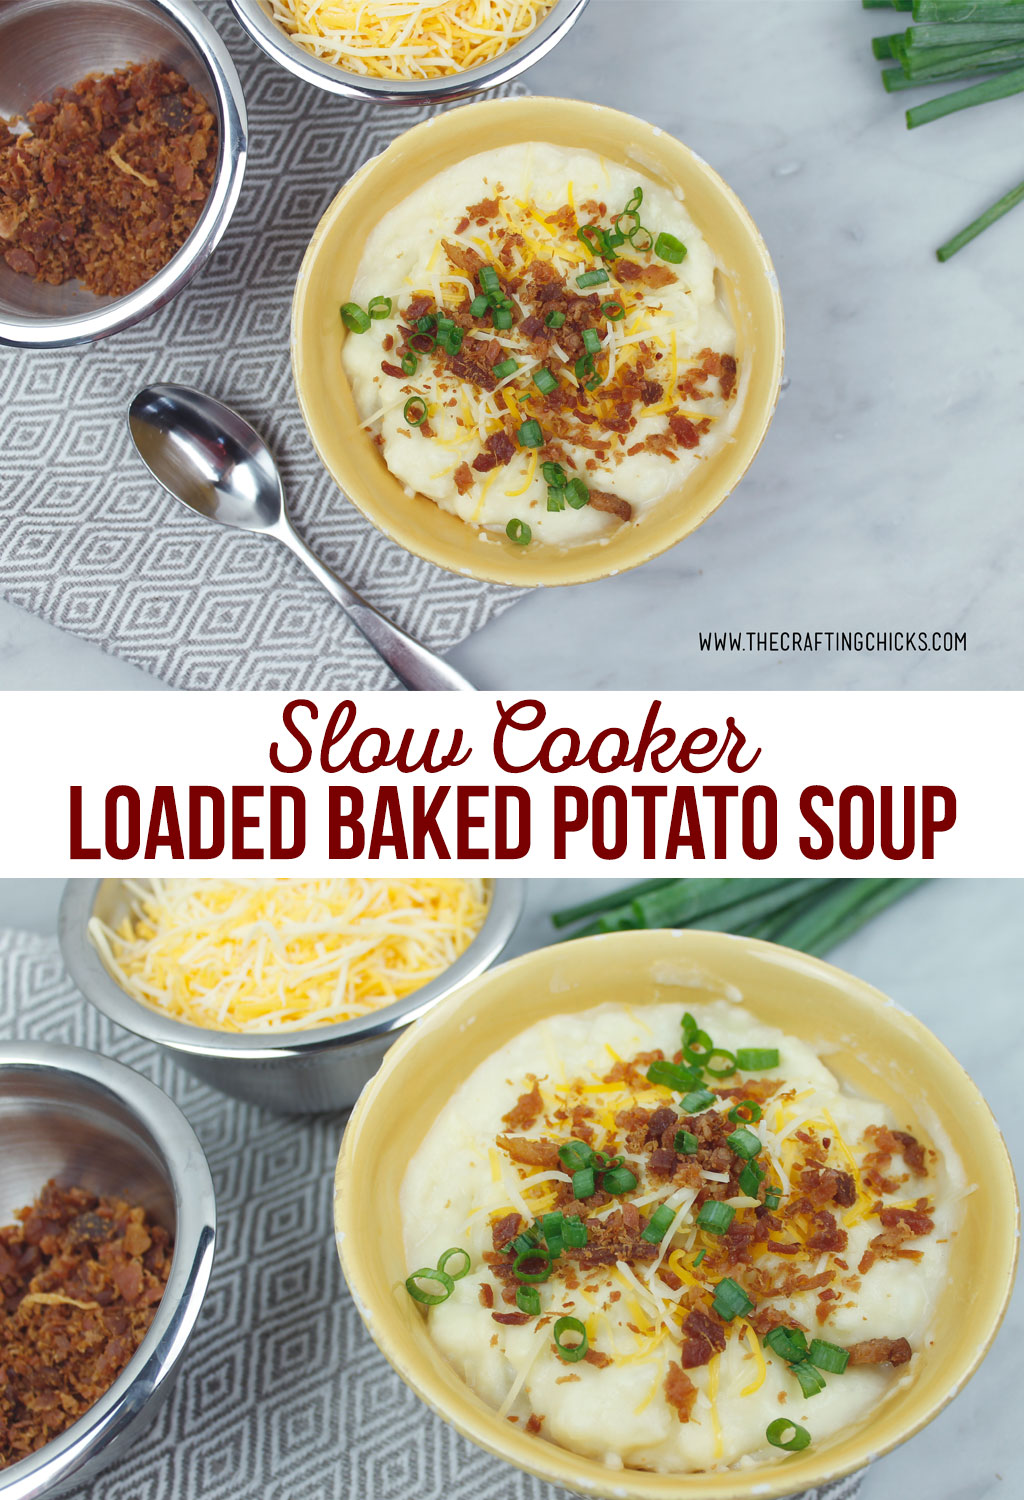 Slow Cooker Loaded Baked Potato Soup is perfect for those days where you want to toss some thing in the crockpot and not worry about it later.